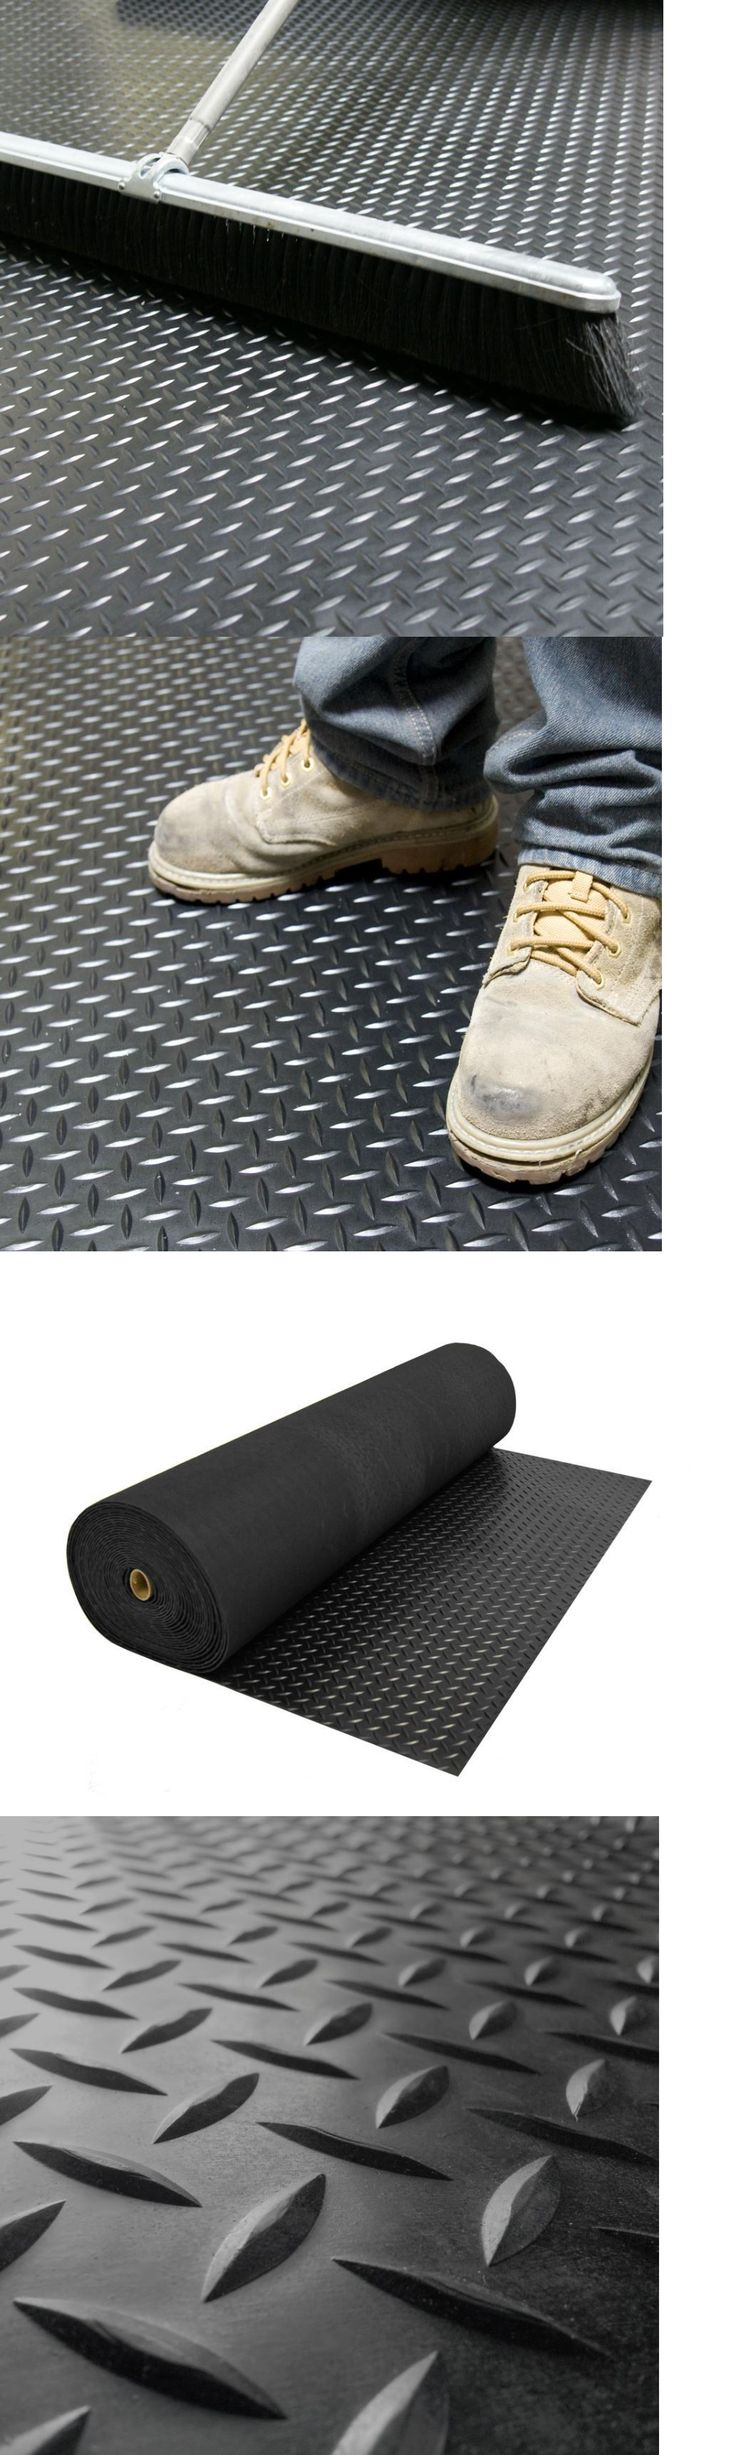 Rubber mats at home depot - Equipment Mats And Flooring 179806 Garage Floor Protector Rubber Flooring For Home Gym Black Diamond